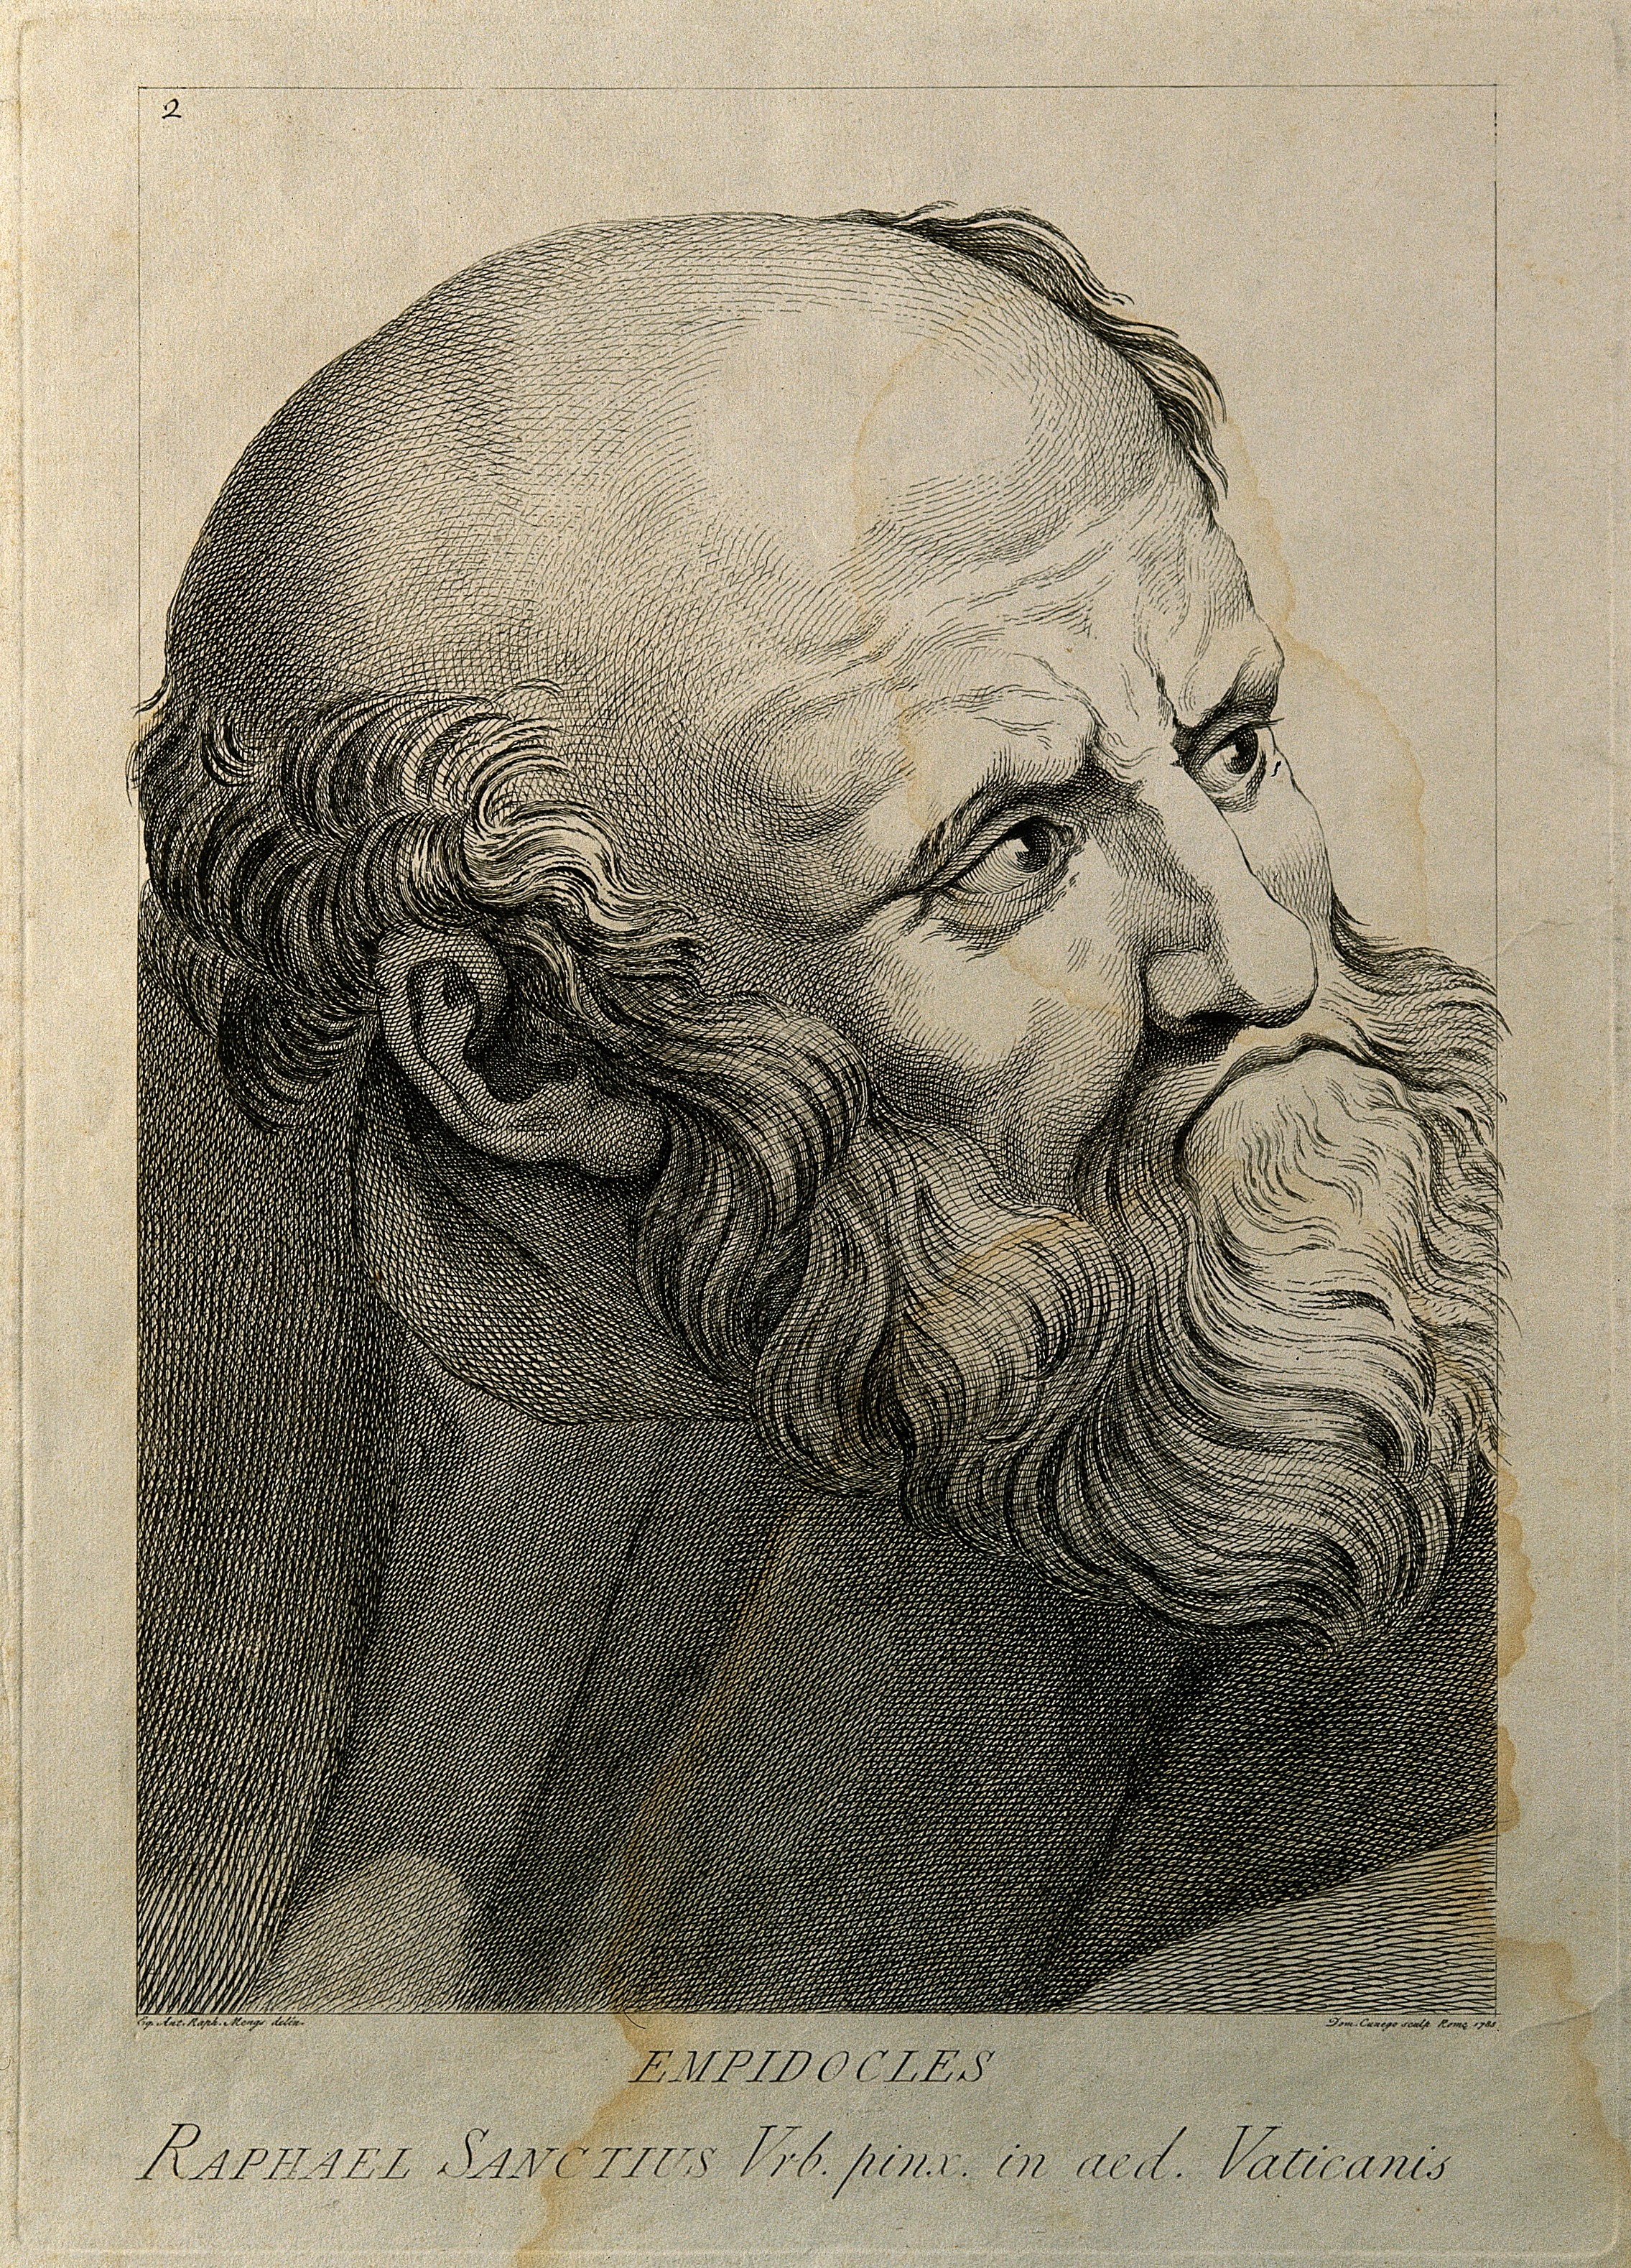 File:Empedocles._Line_engraving_by_D._Cunego,_1785,_after_Raphael_Wellcome_V0001765 on Numbe Line